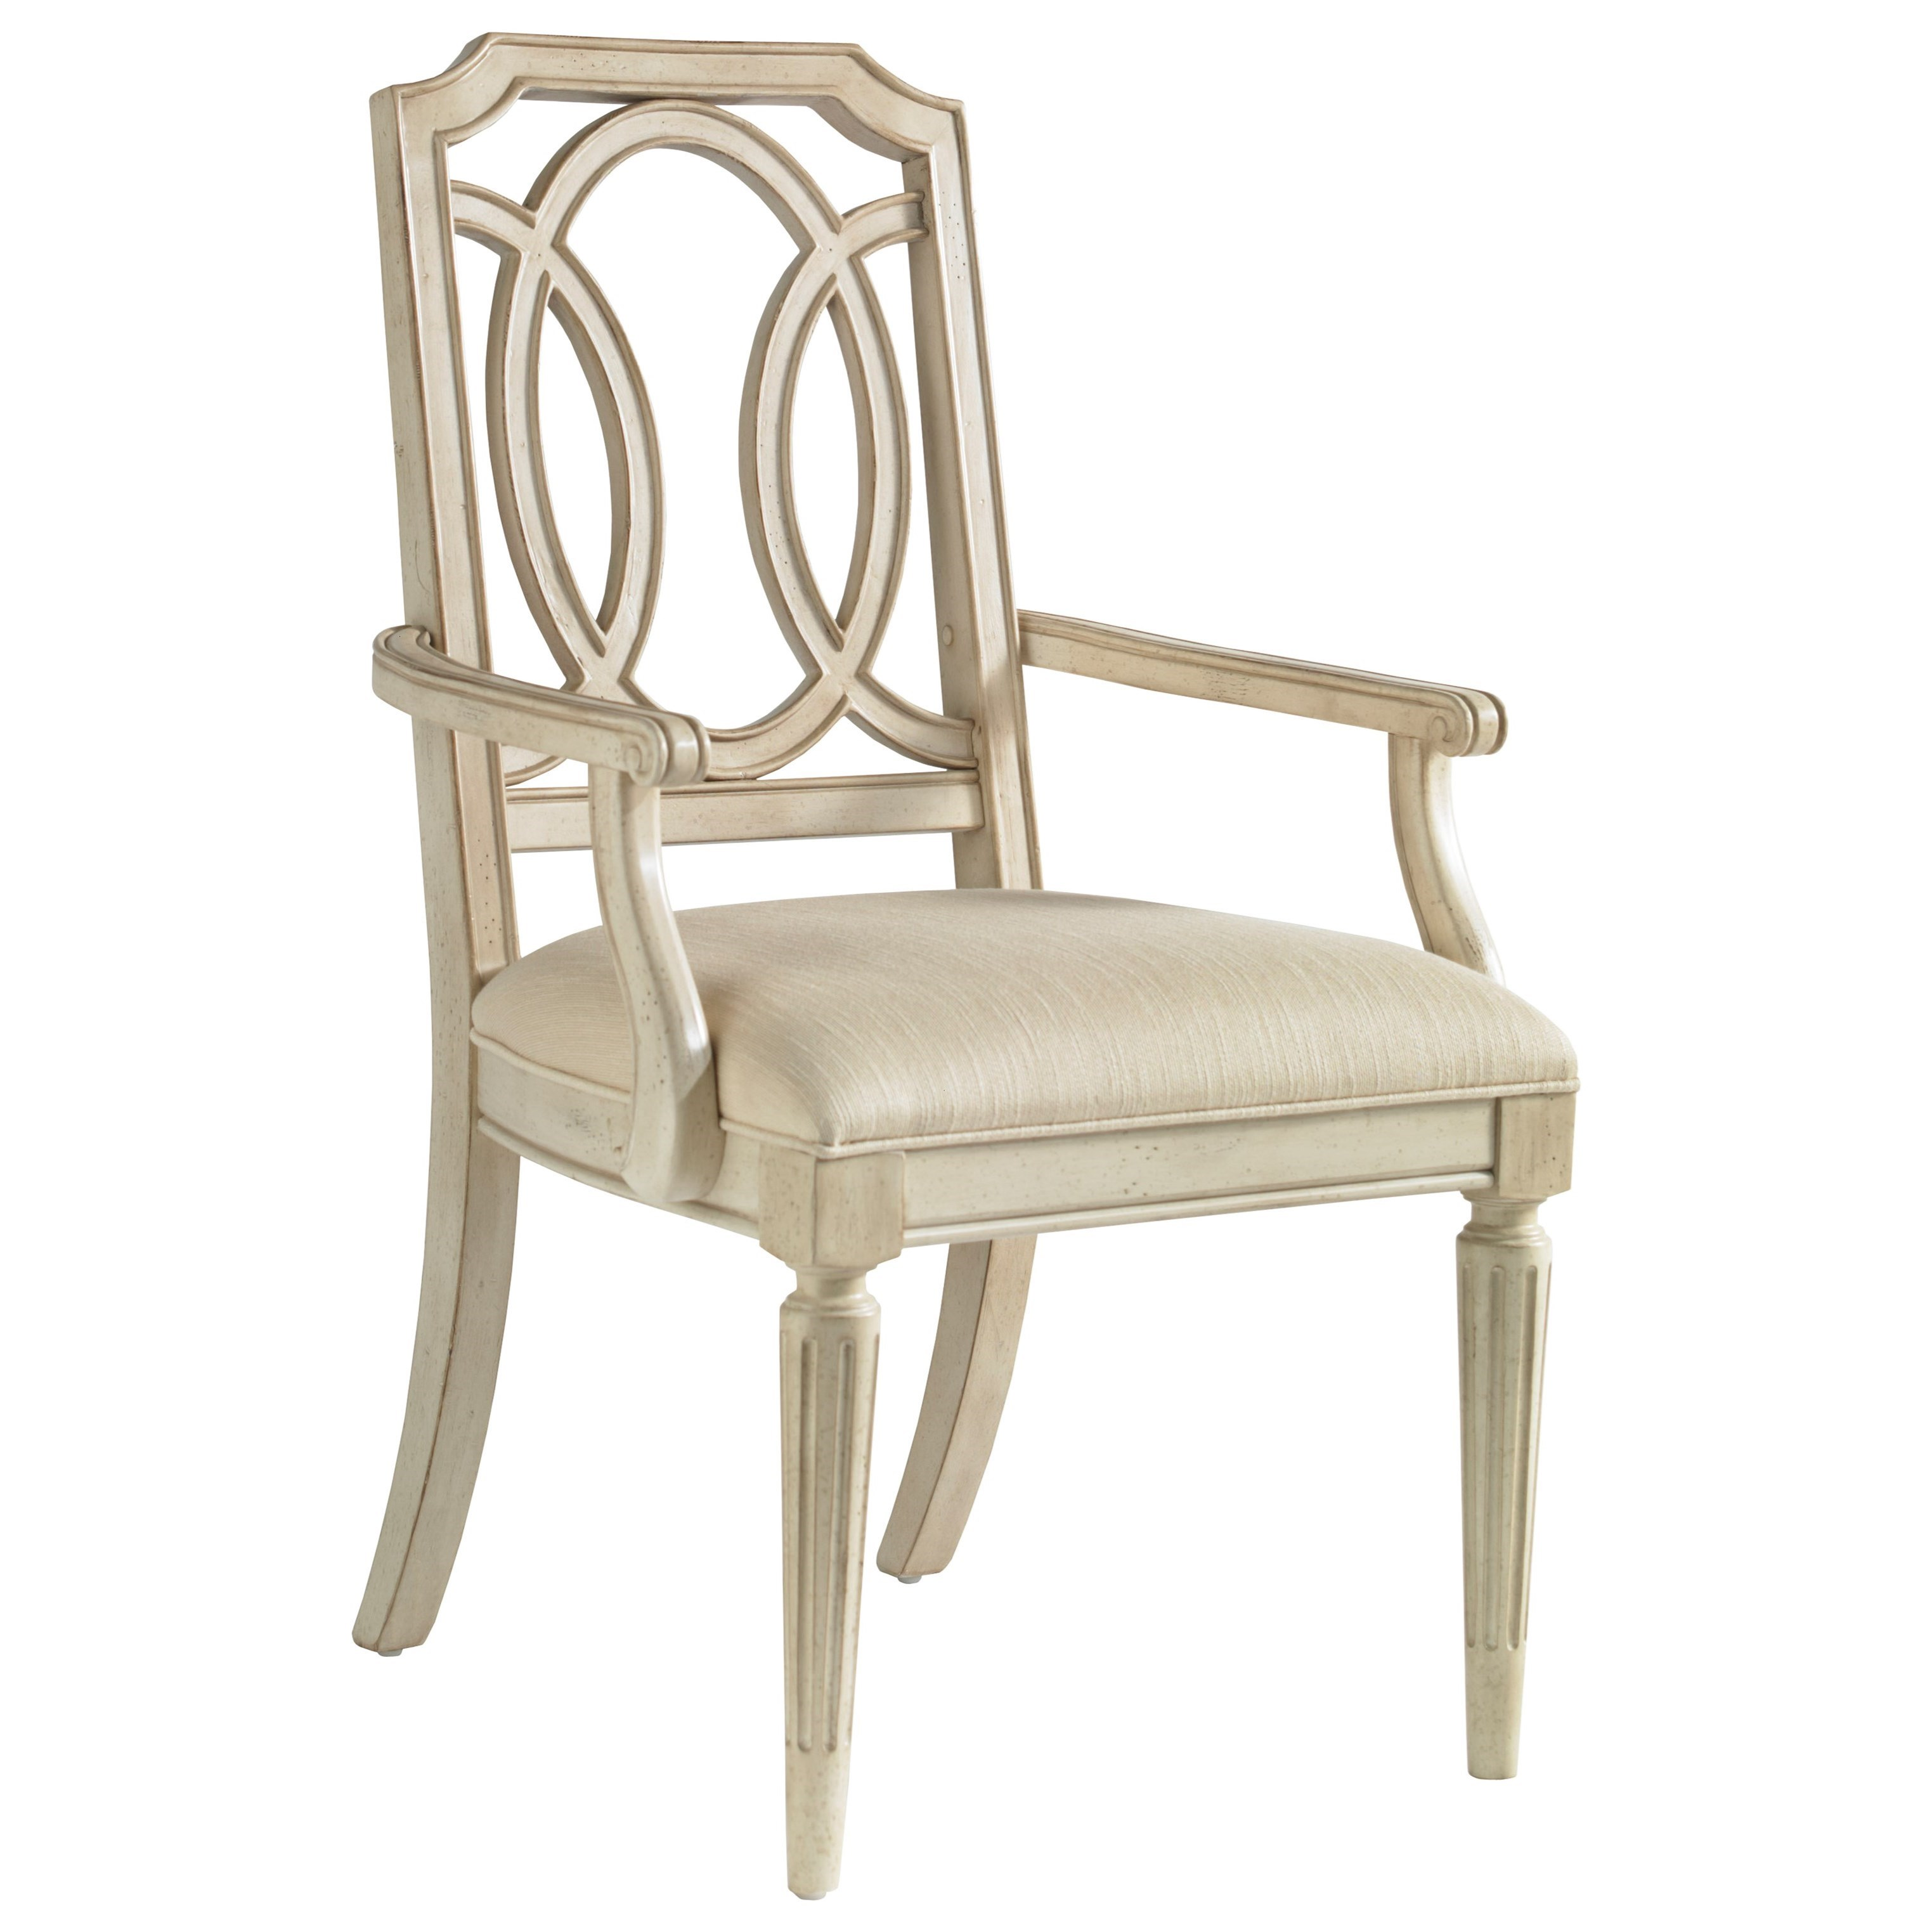 A.R.T. Furniture Inc Provenance Arm Chair - Item Number: 76205-2617